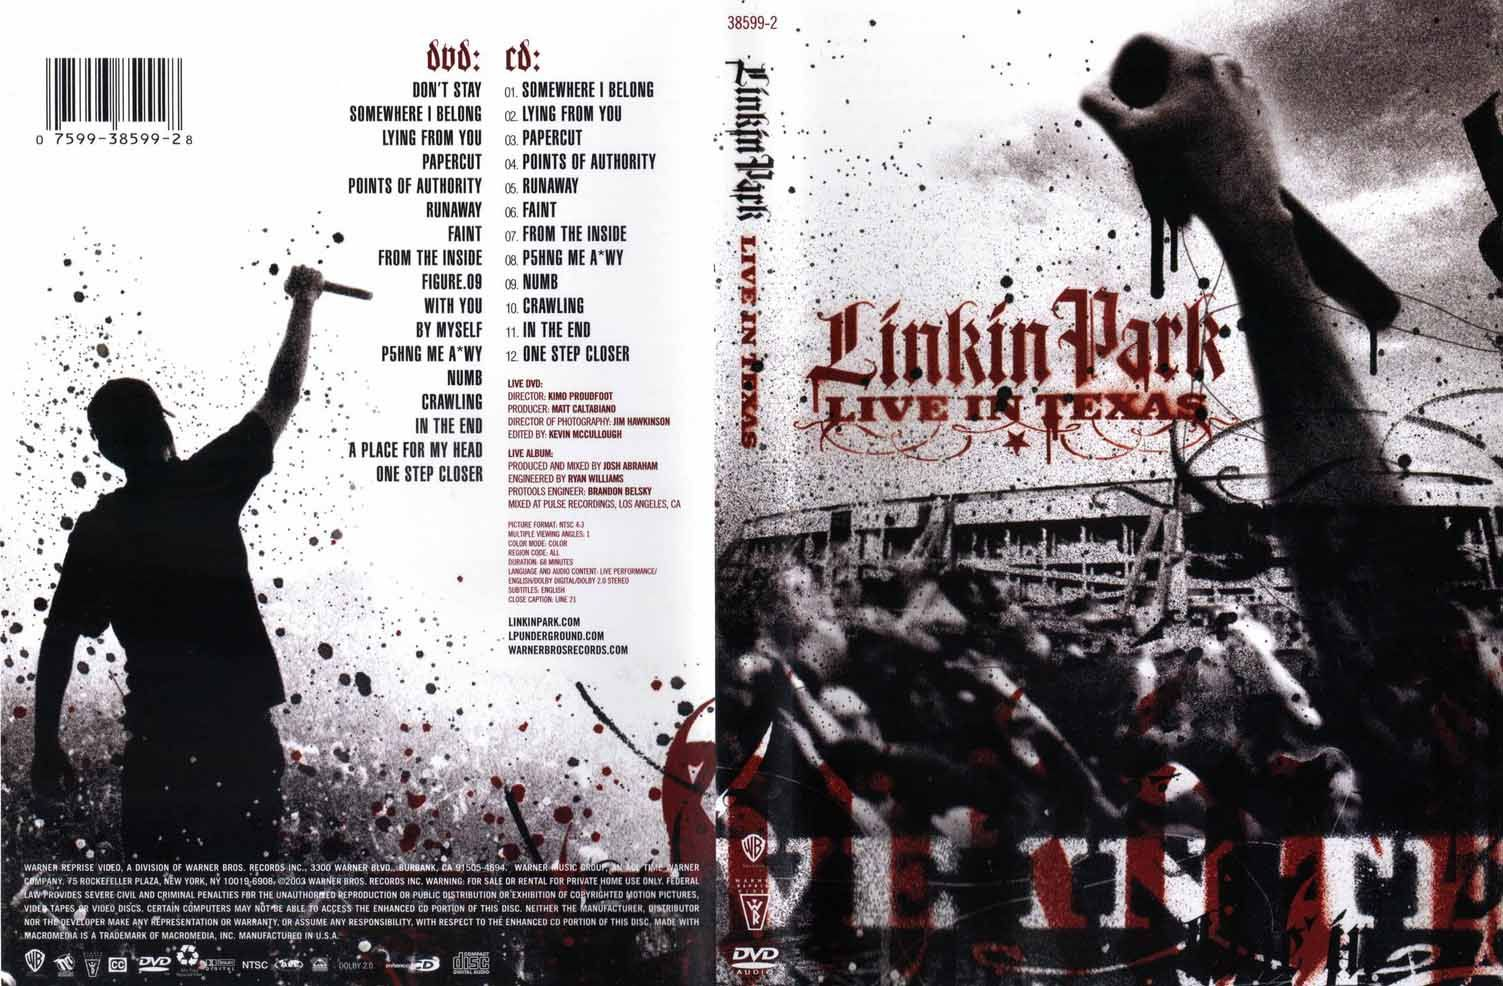 Linkin park live in texas full album free download